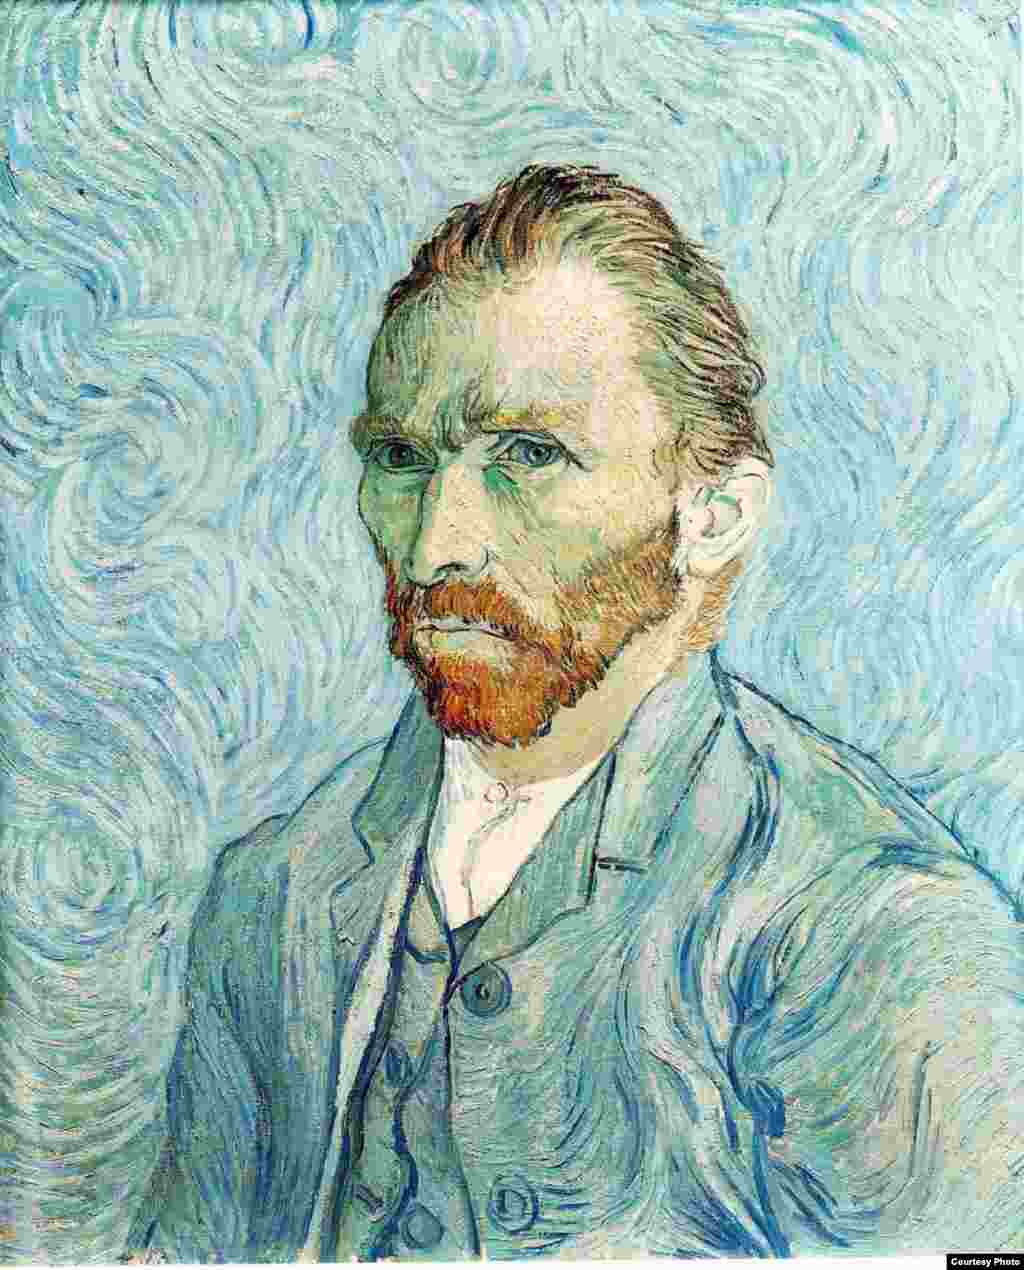 This iconic self-portrait by Vincent Van Gogh, in the Musee d'Orsay in Paris, dates to 1889.